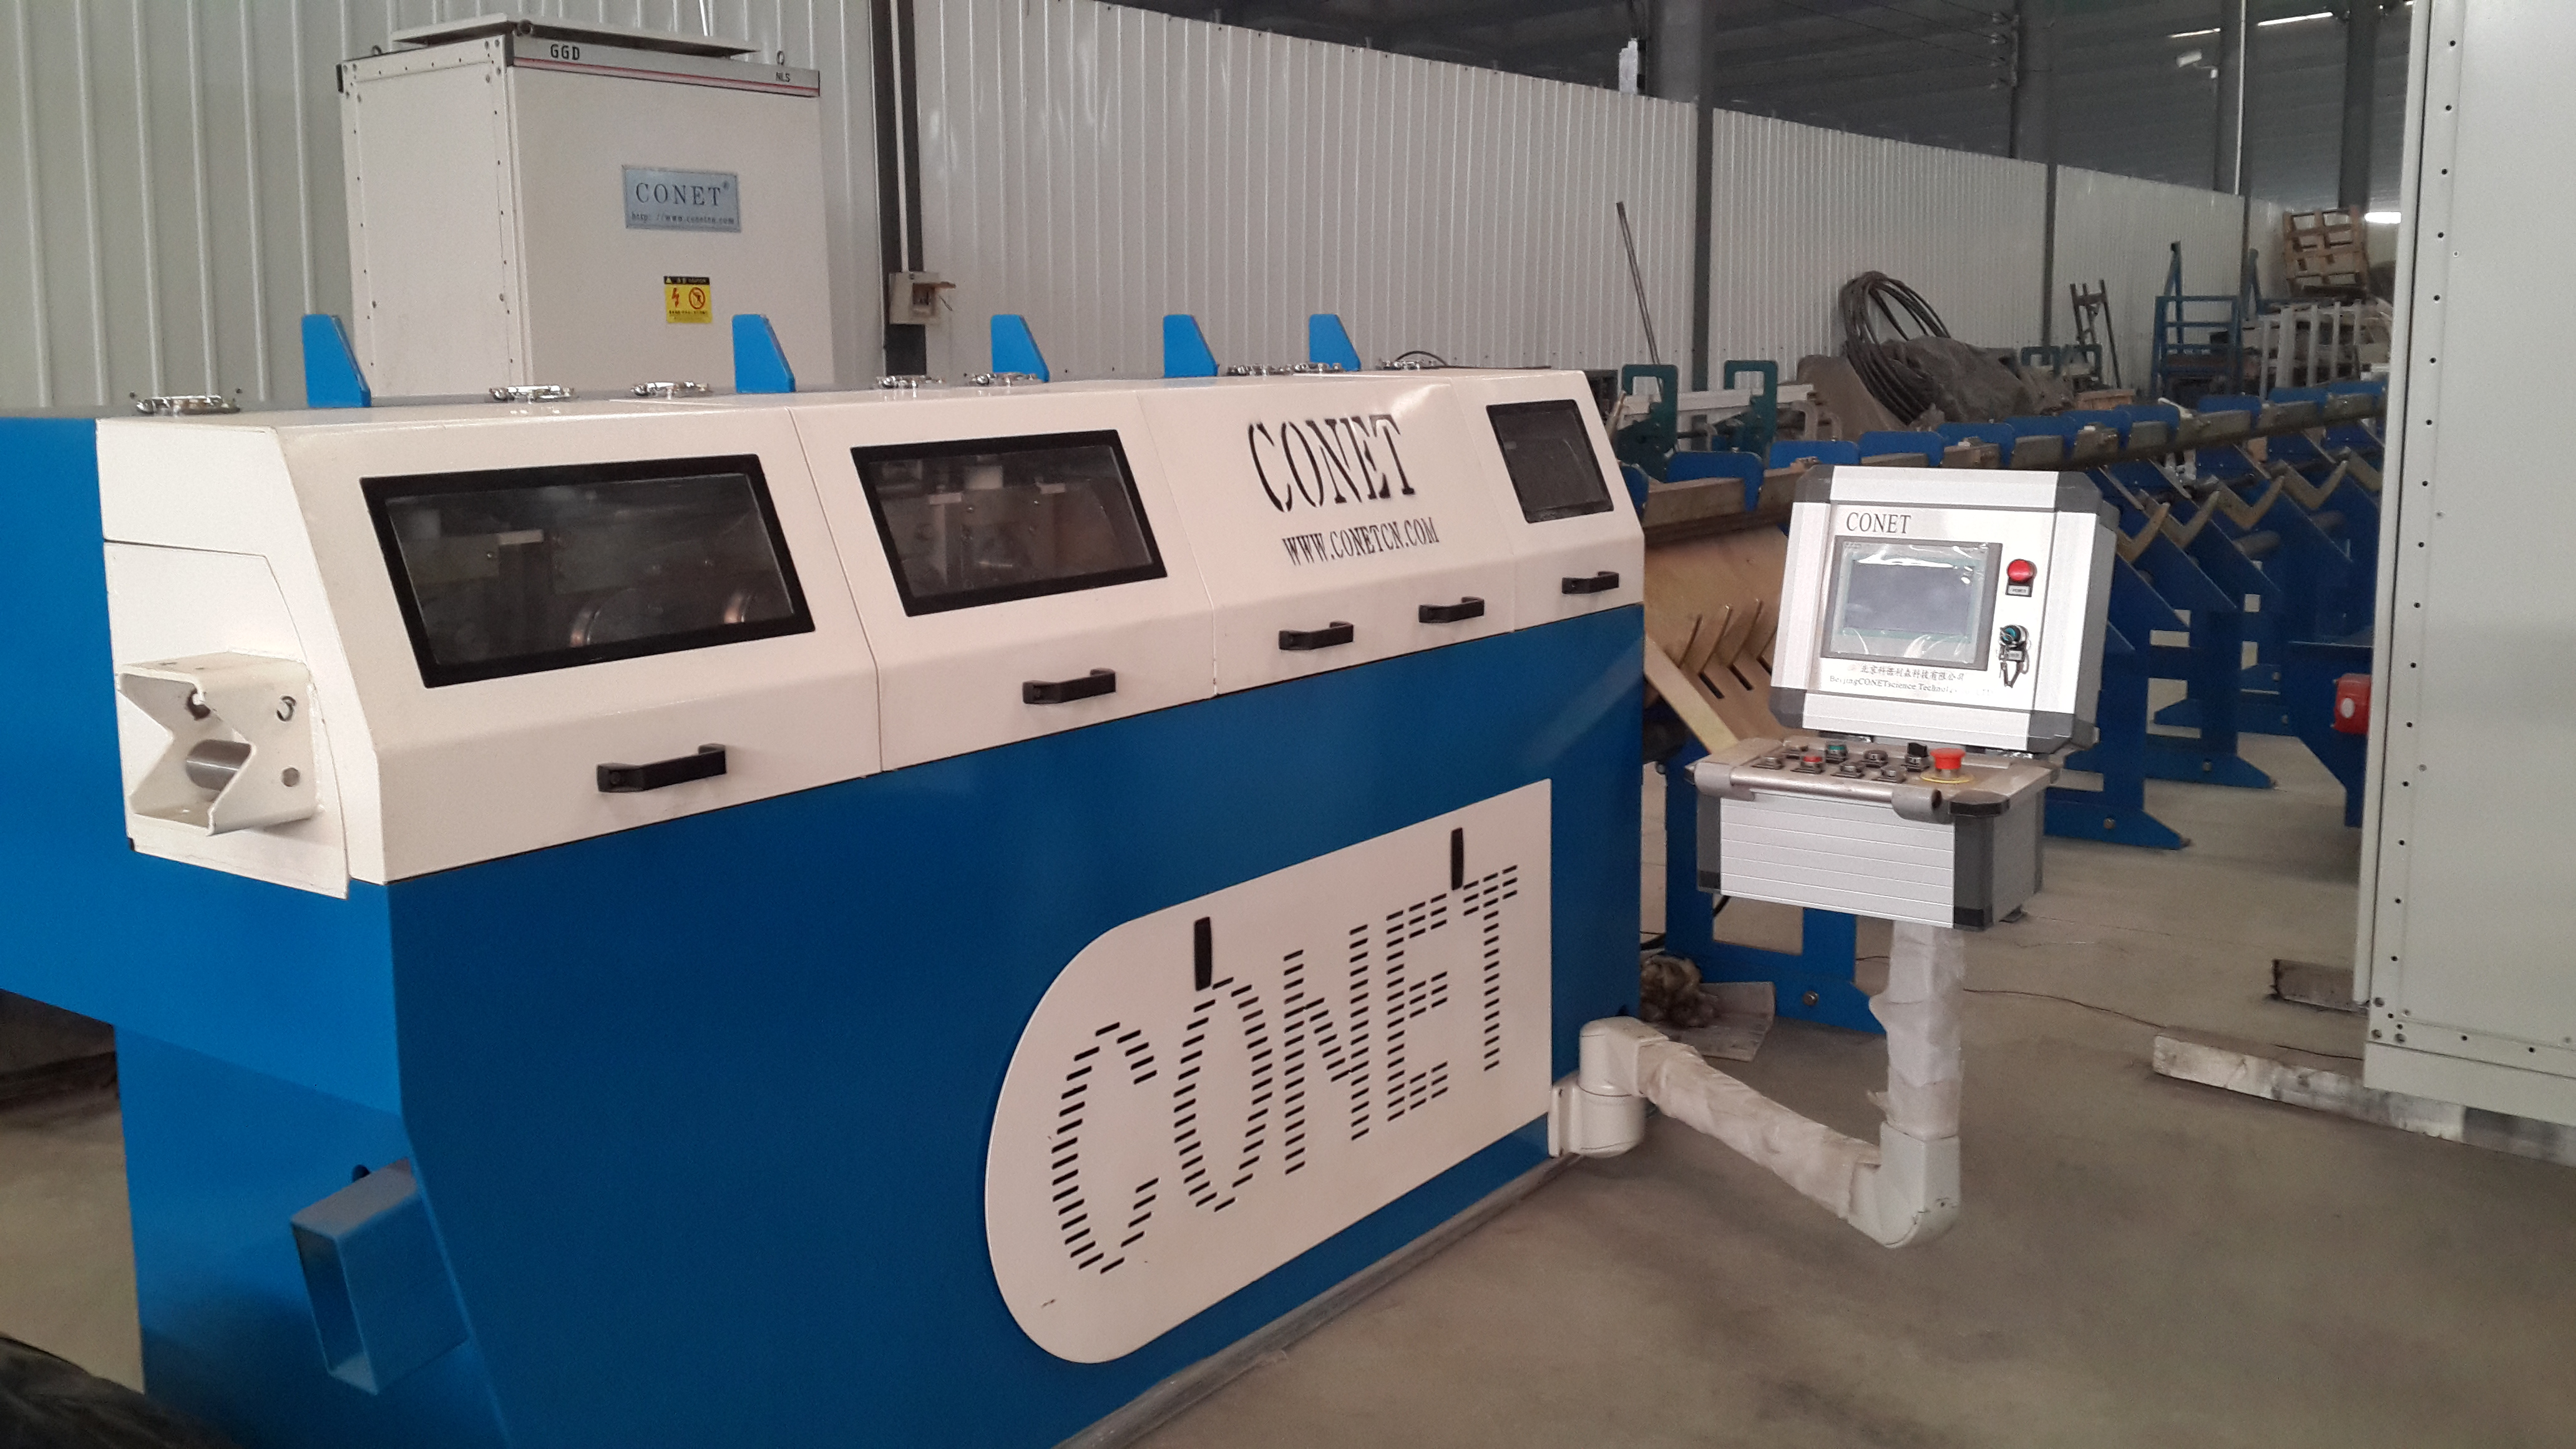 The CONET steel bar straightens the cutting off machine